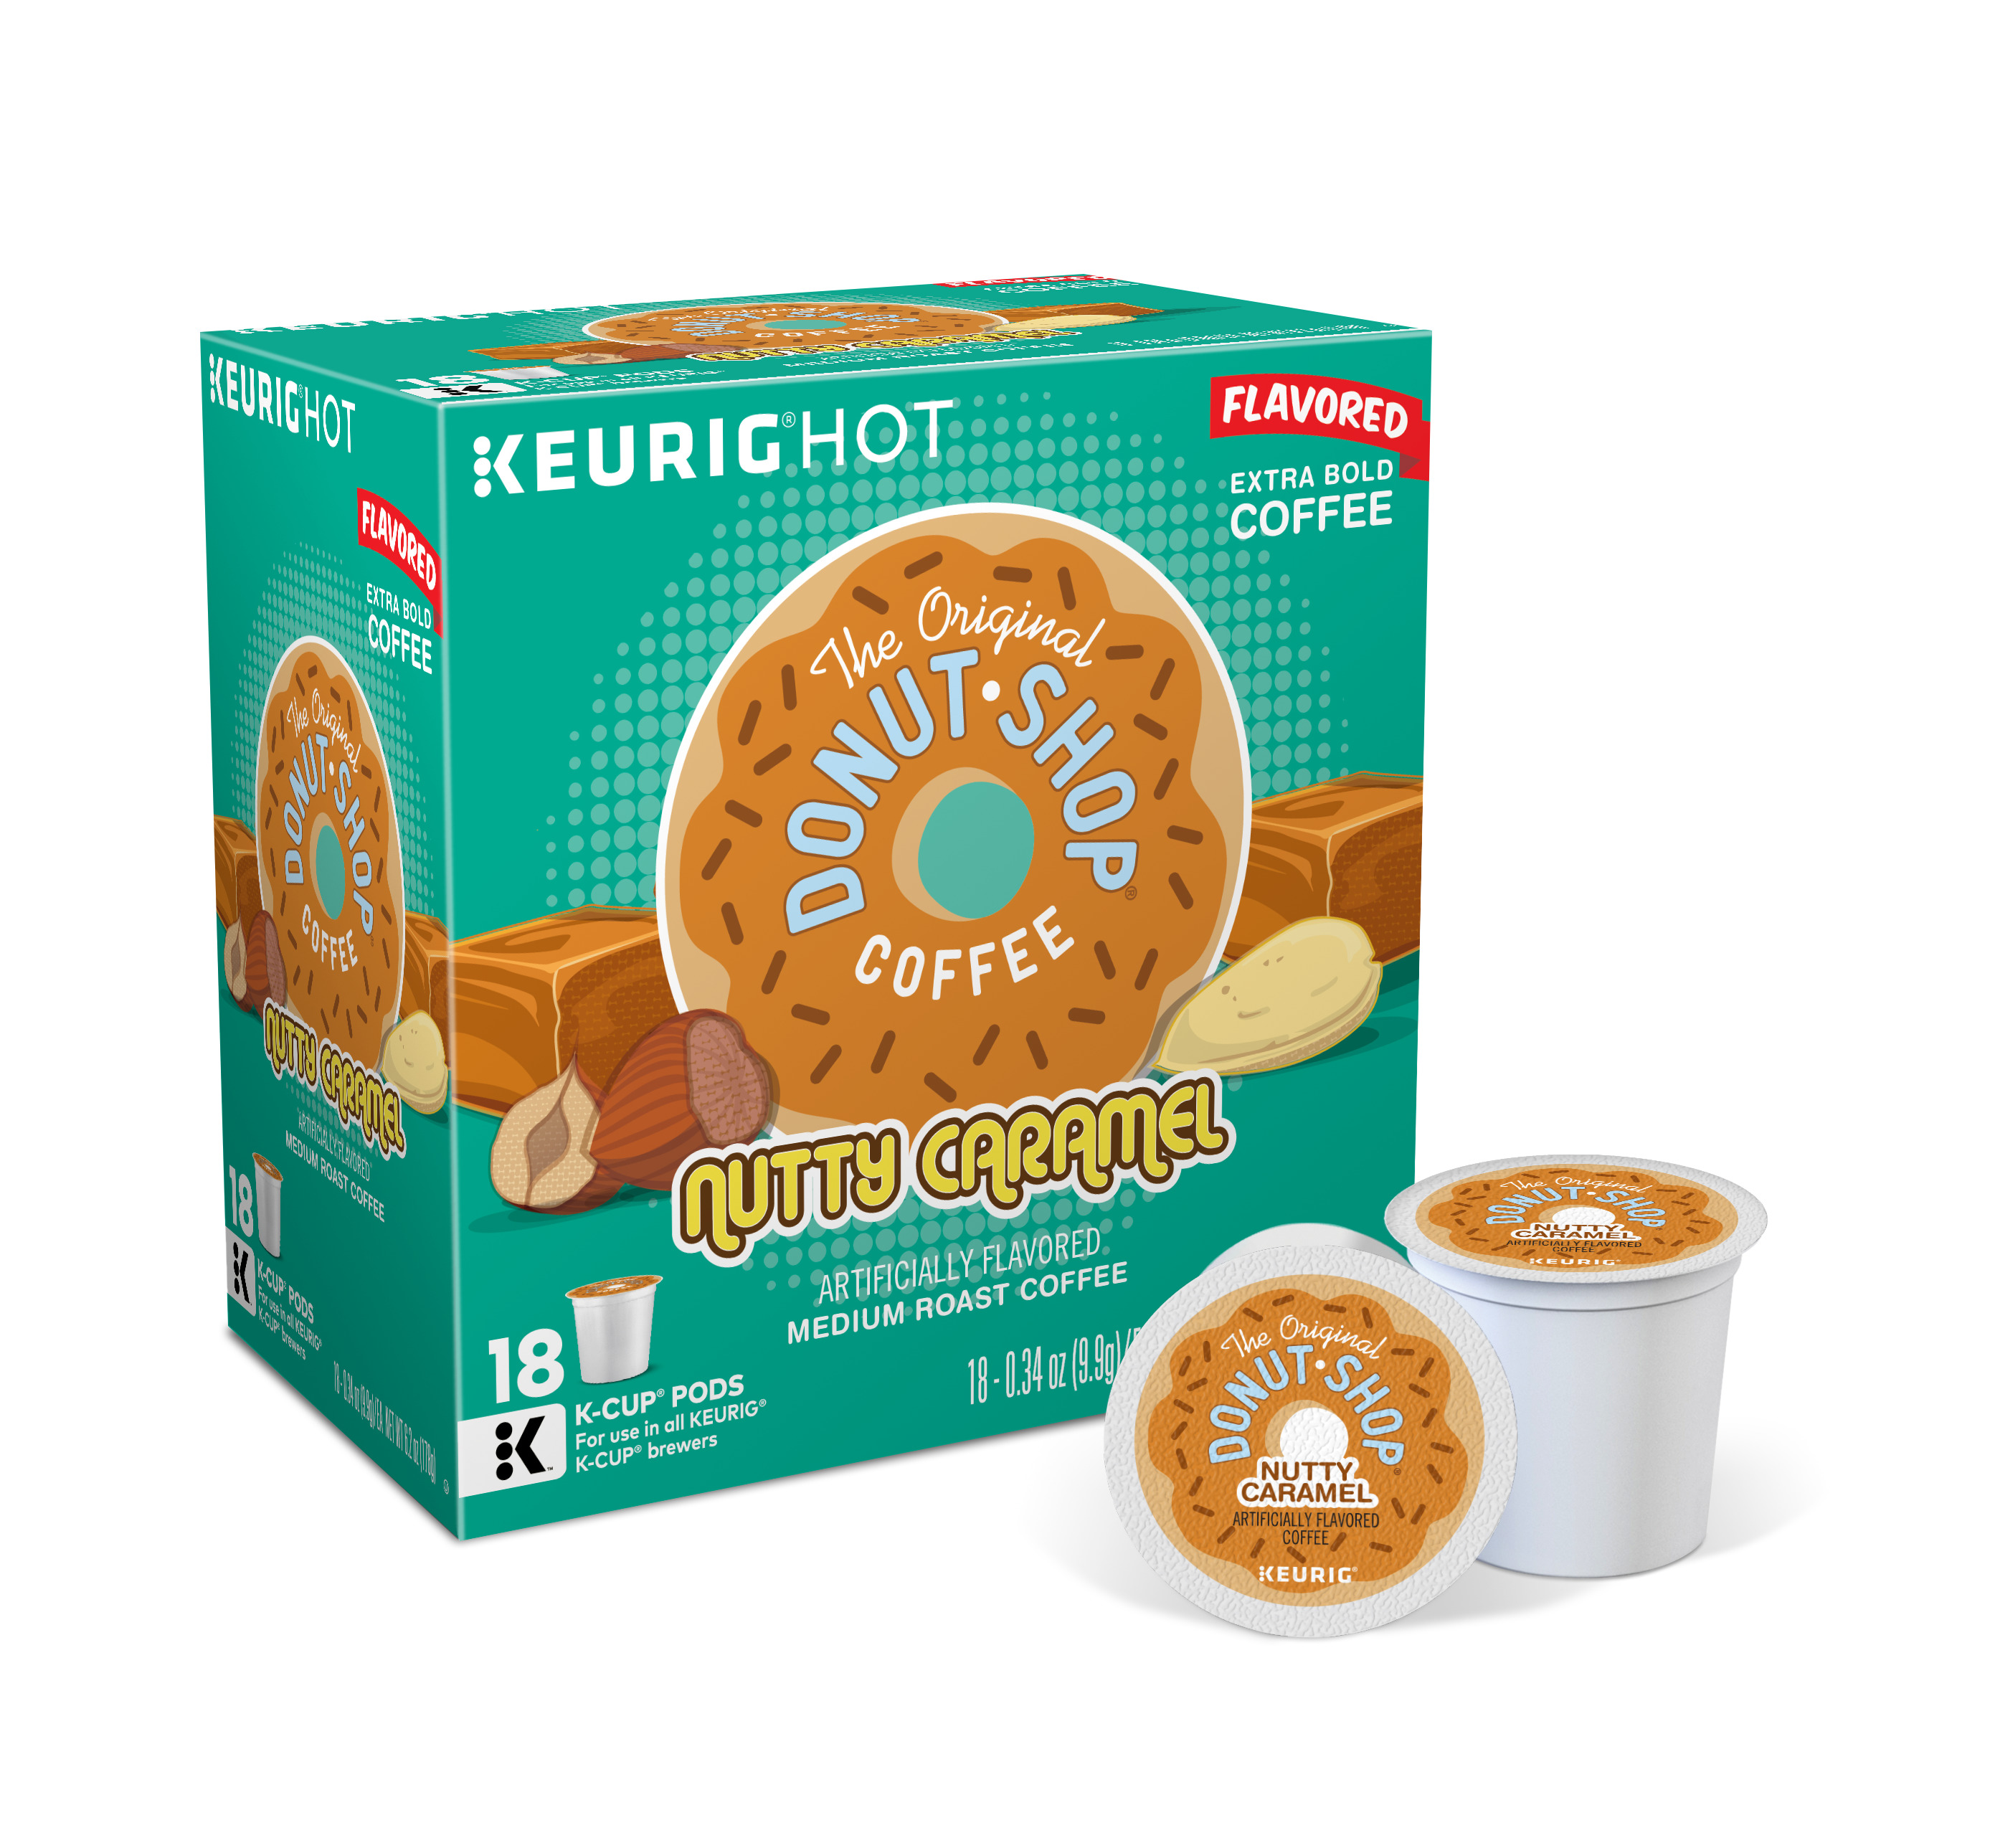 The Original Donut Shop Nutty Caramel Keurig Single-Serve K-Cup Pods, Medium Roast Coffee, 18 Count